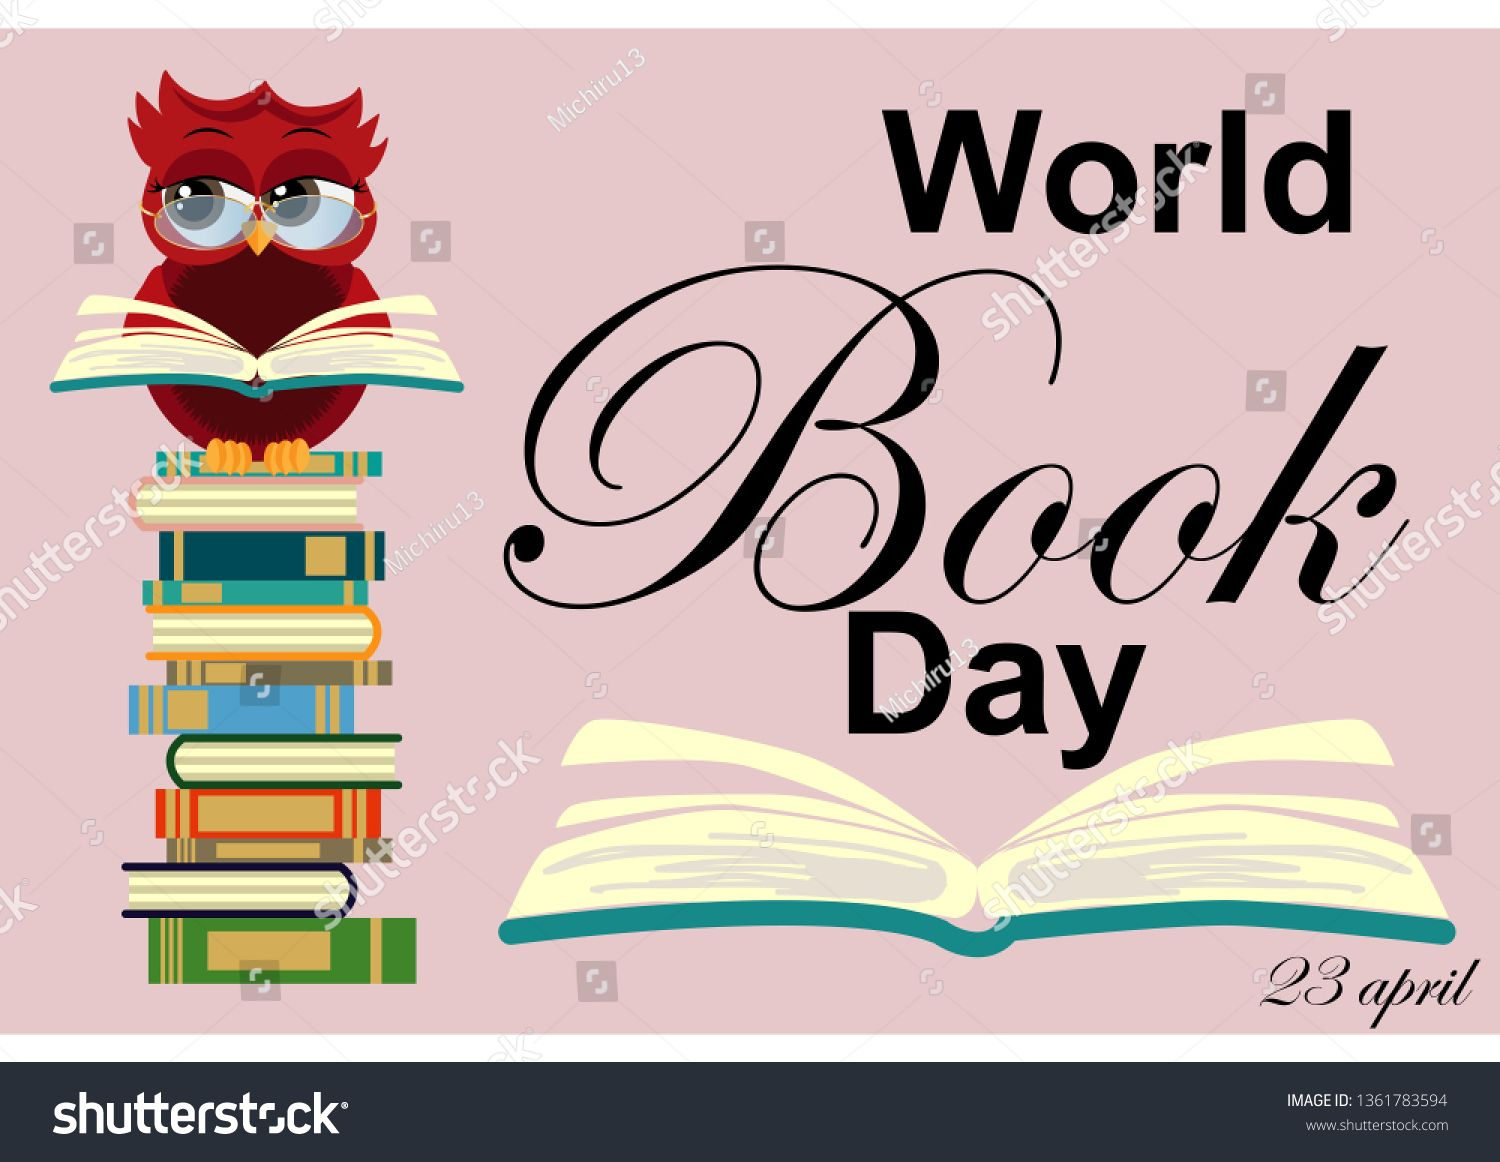 World Book Day Smart Owl On Stack Of Books Open Book And Lettering On Teal Background Knowledge Education Studyi Learning Poster Open Book Teal Background